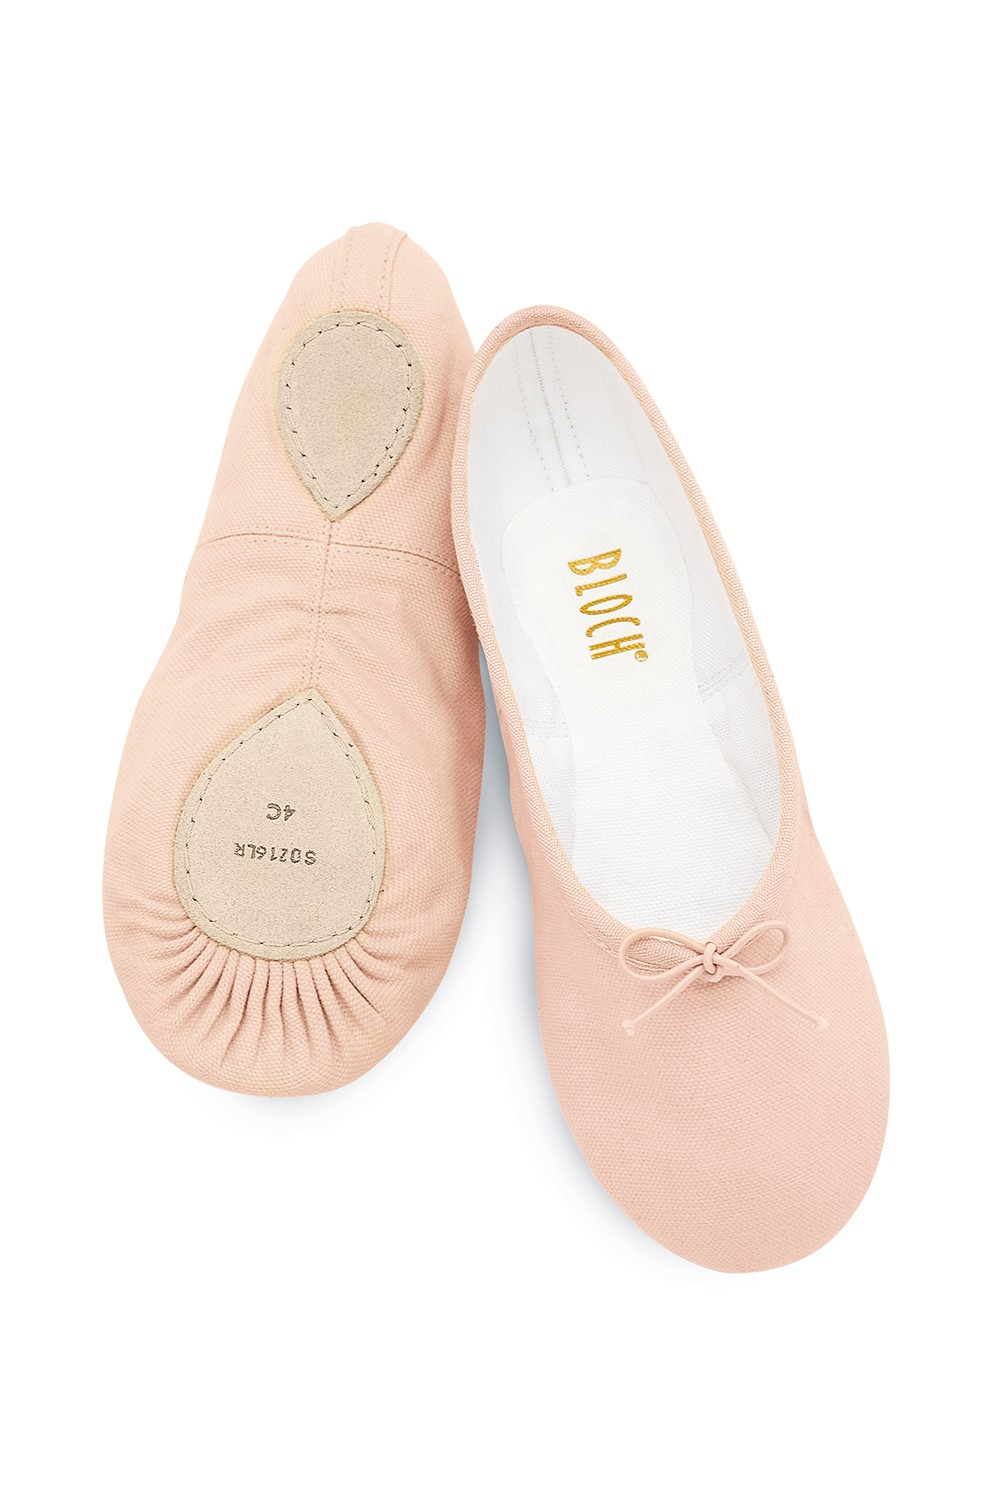 Prolite Ii Streamline Women's Ballet Shoes